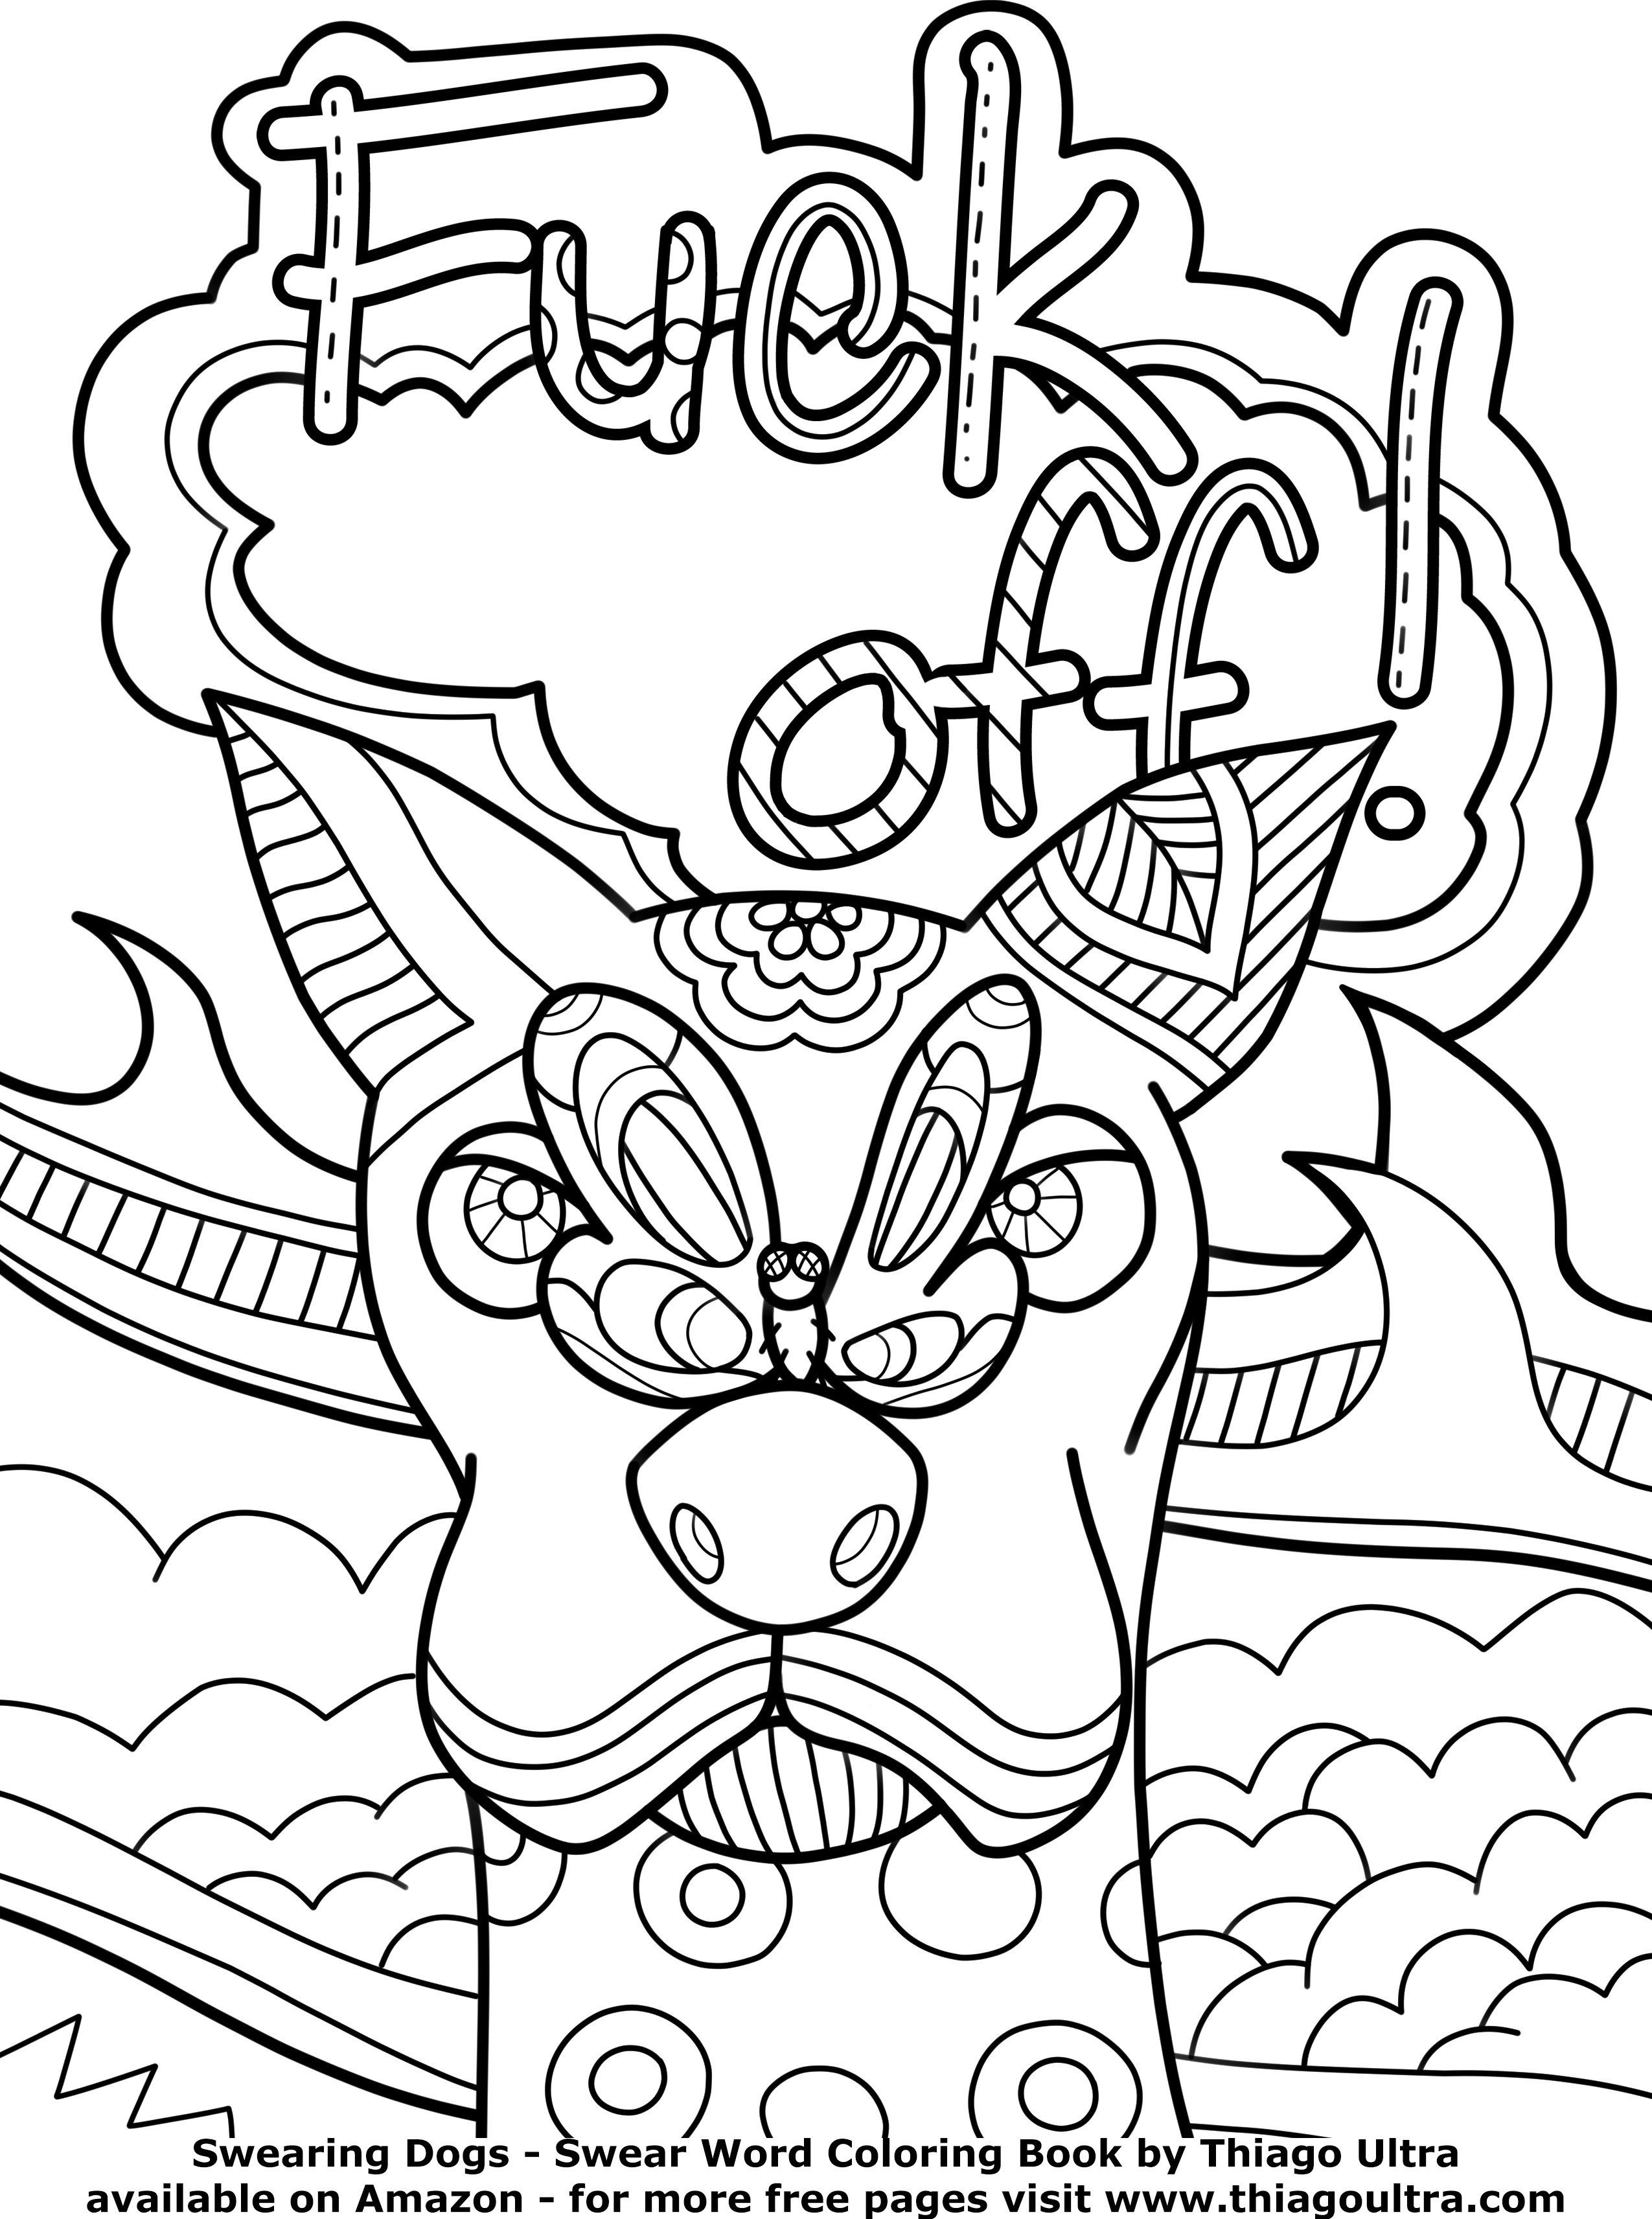 Coloring Pages : Printable Adult Coloring Pages Swear Words Free - Free Printable Coloring Pages For Adults Swear Words